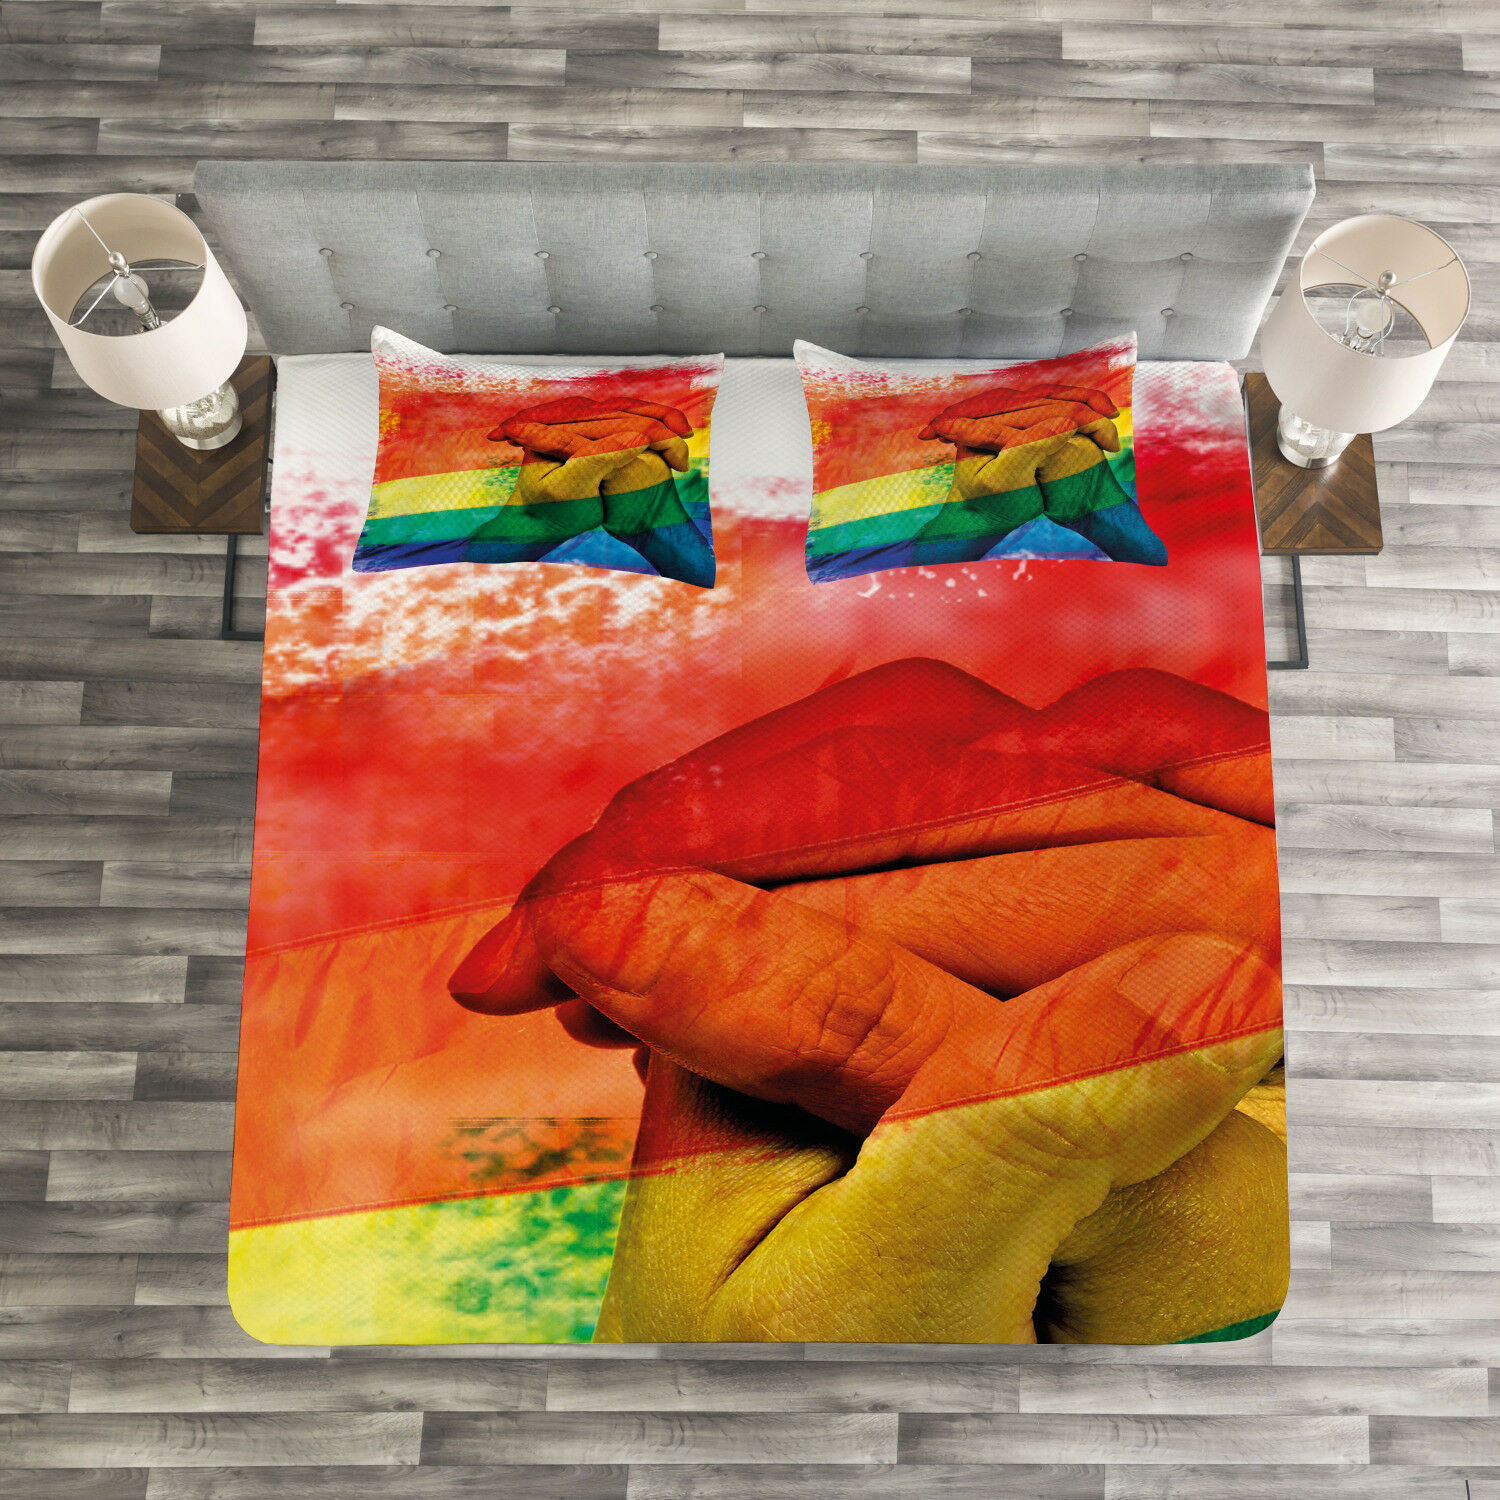 Pride Quilted Bedspread & Pillow Shams Set, Gay Couple Holding Hands Print